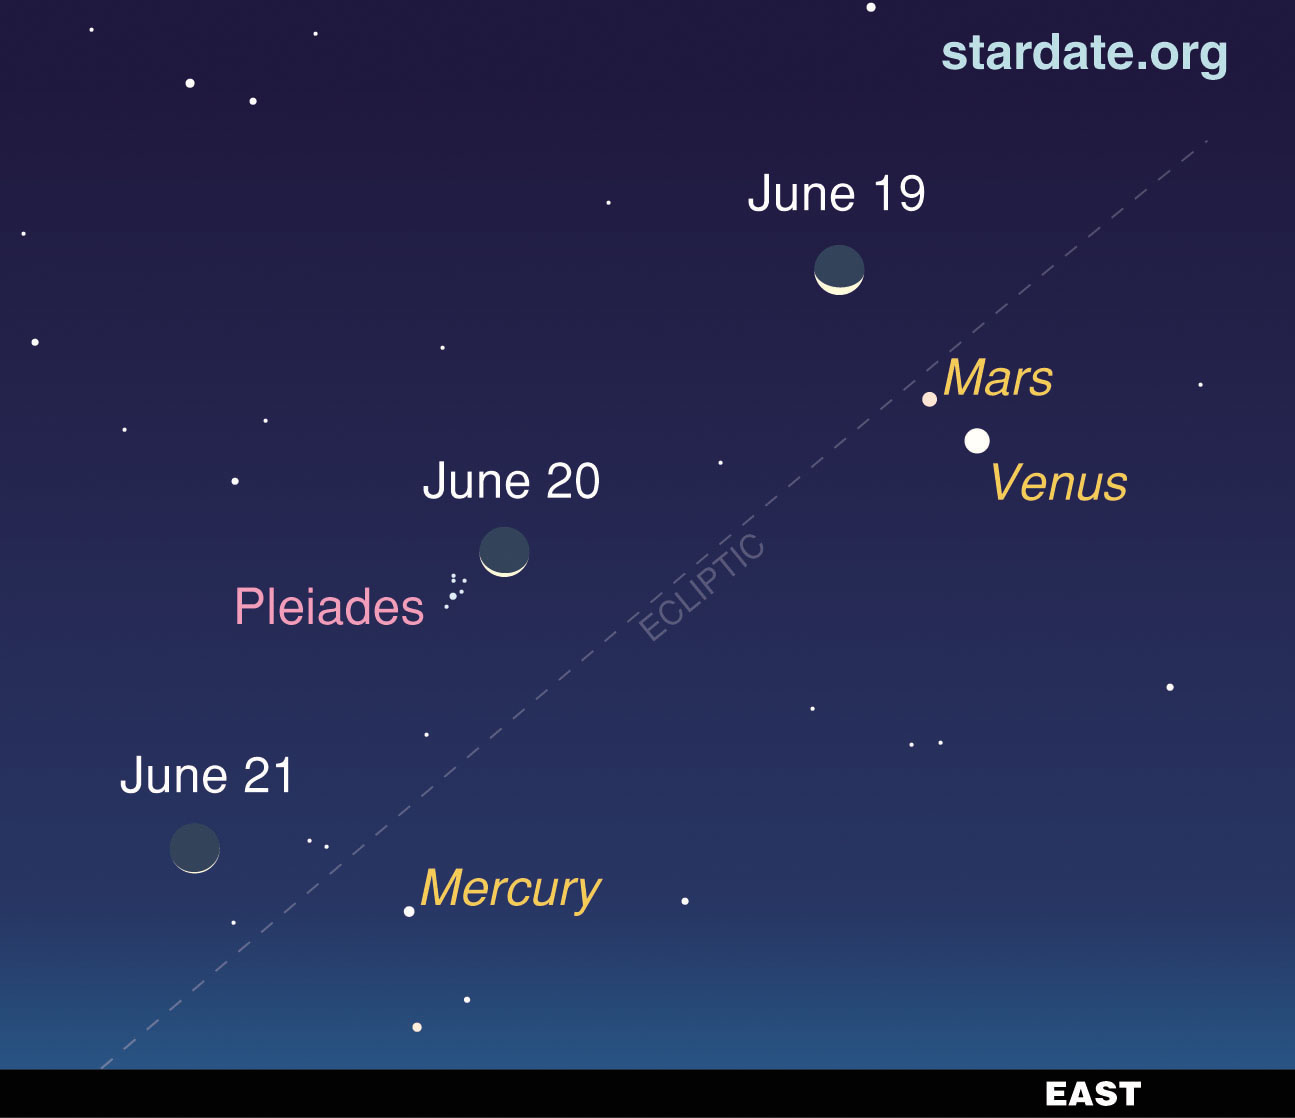 Planetary Line Up Graces Pre-Dawn Sky June 19-21, 2009 ...